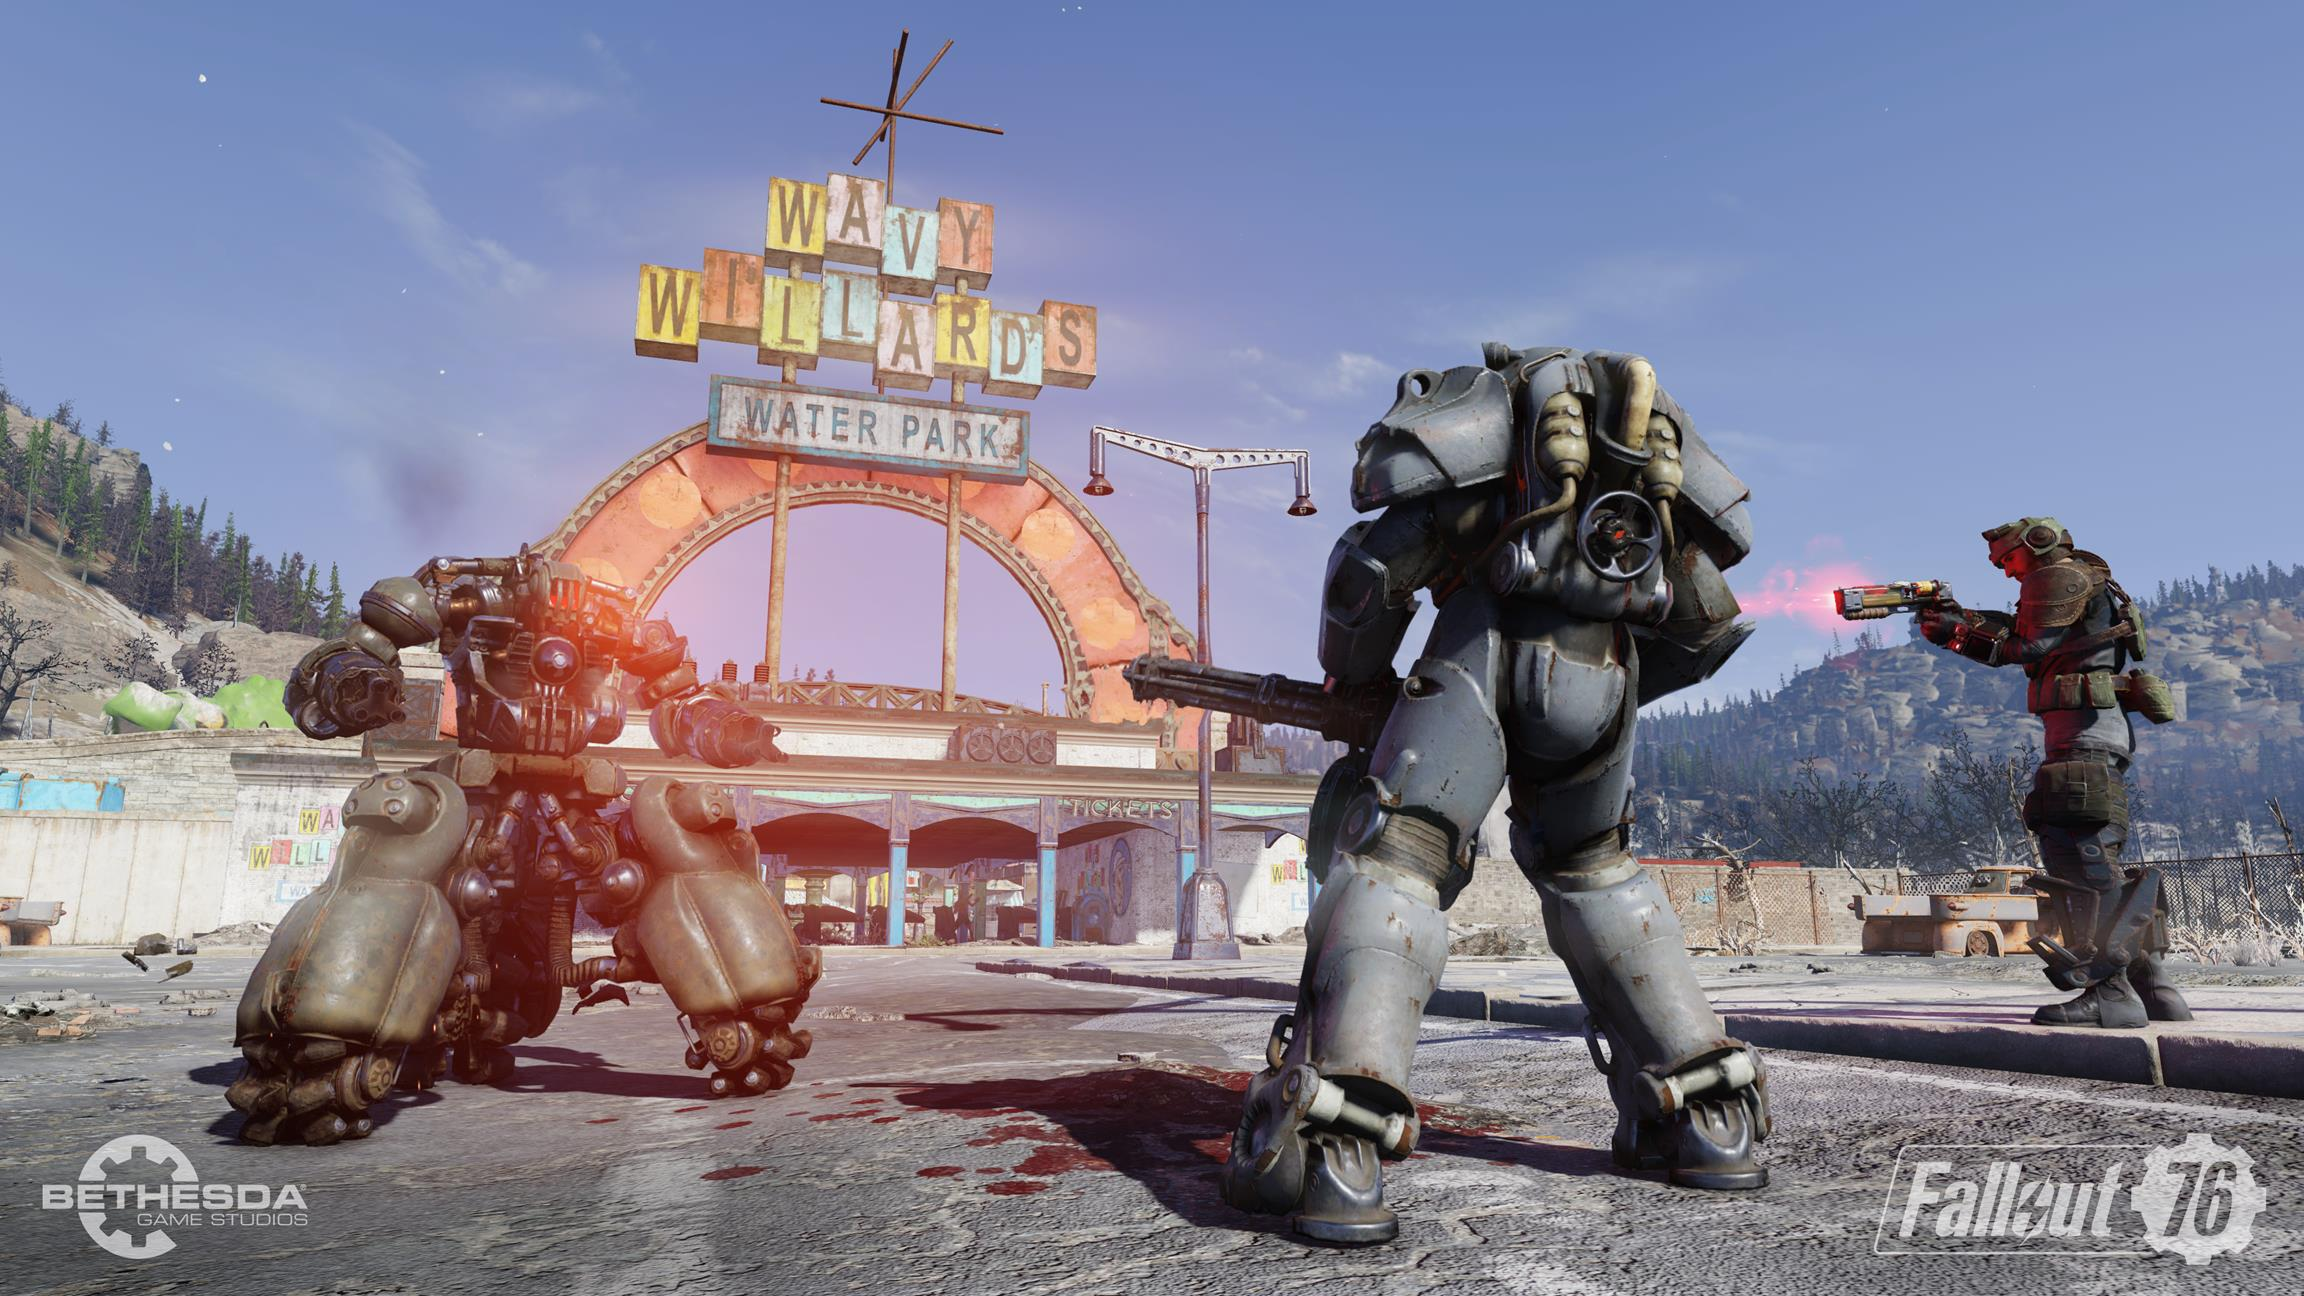 'Fallout 76' bug disabled nukes on New Year's Day